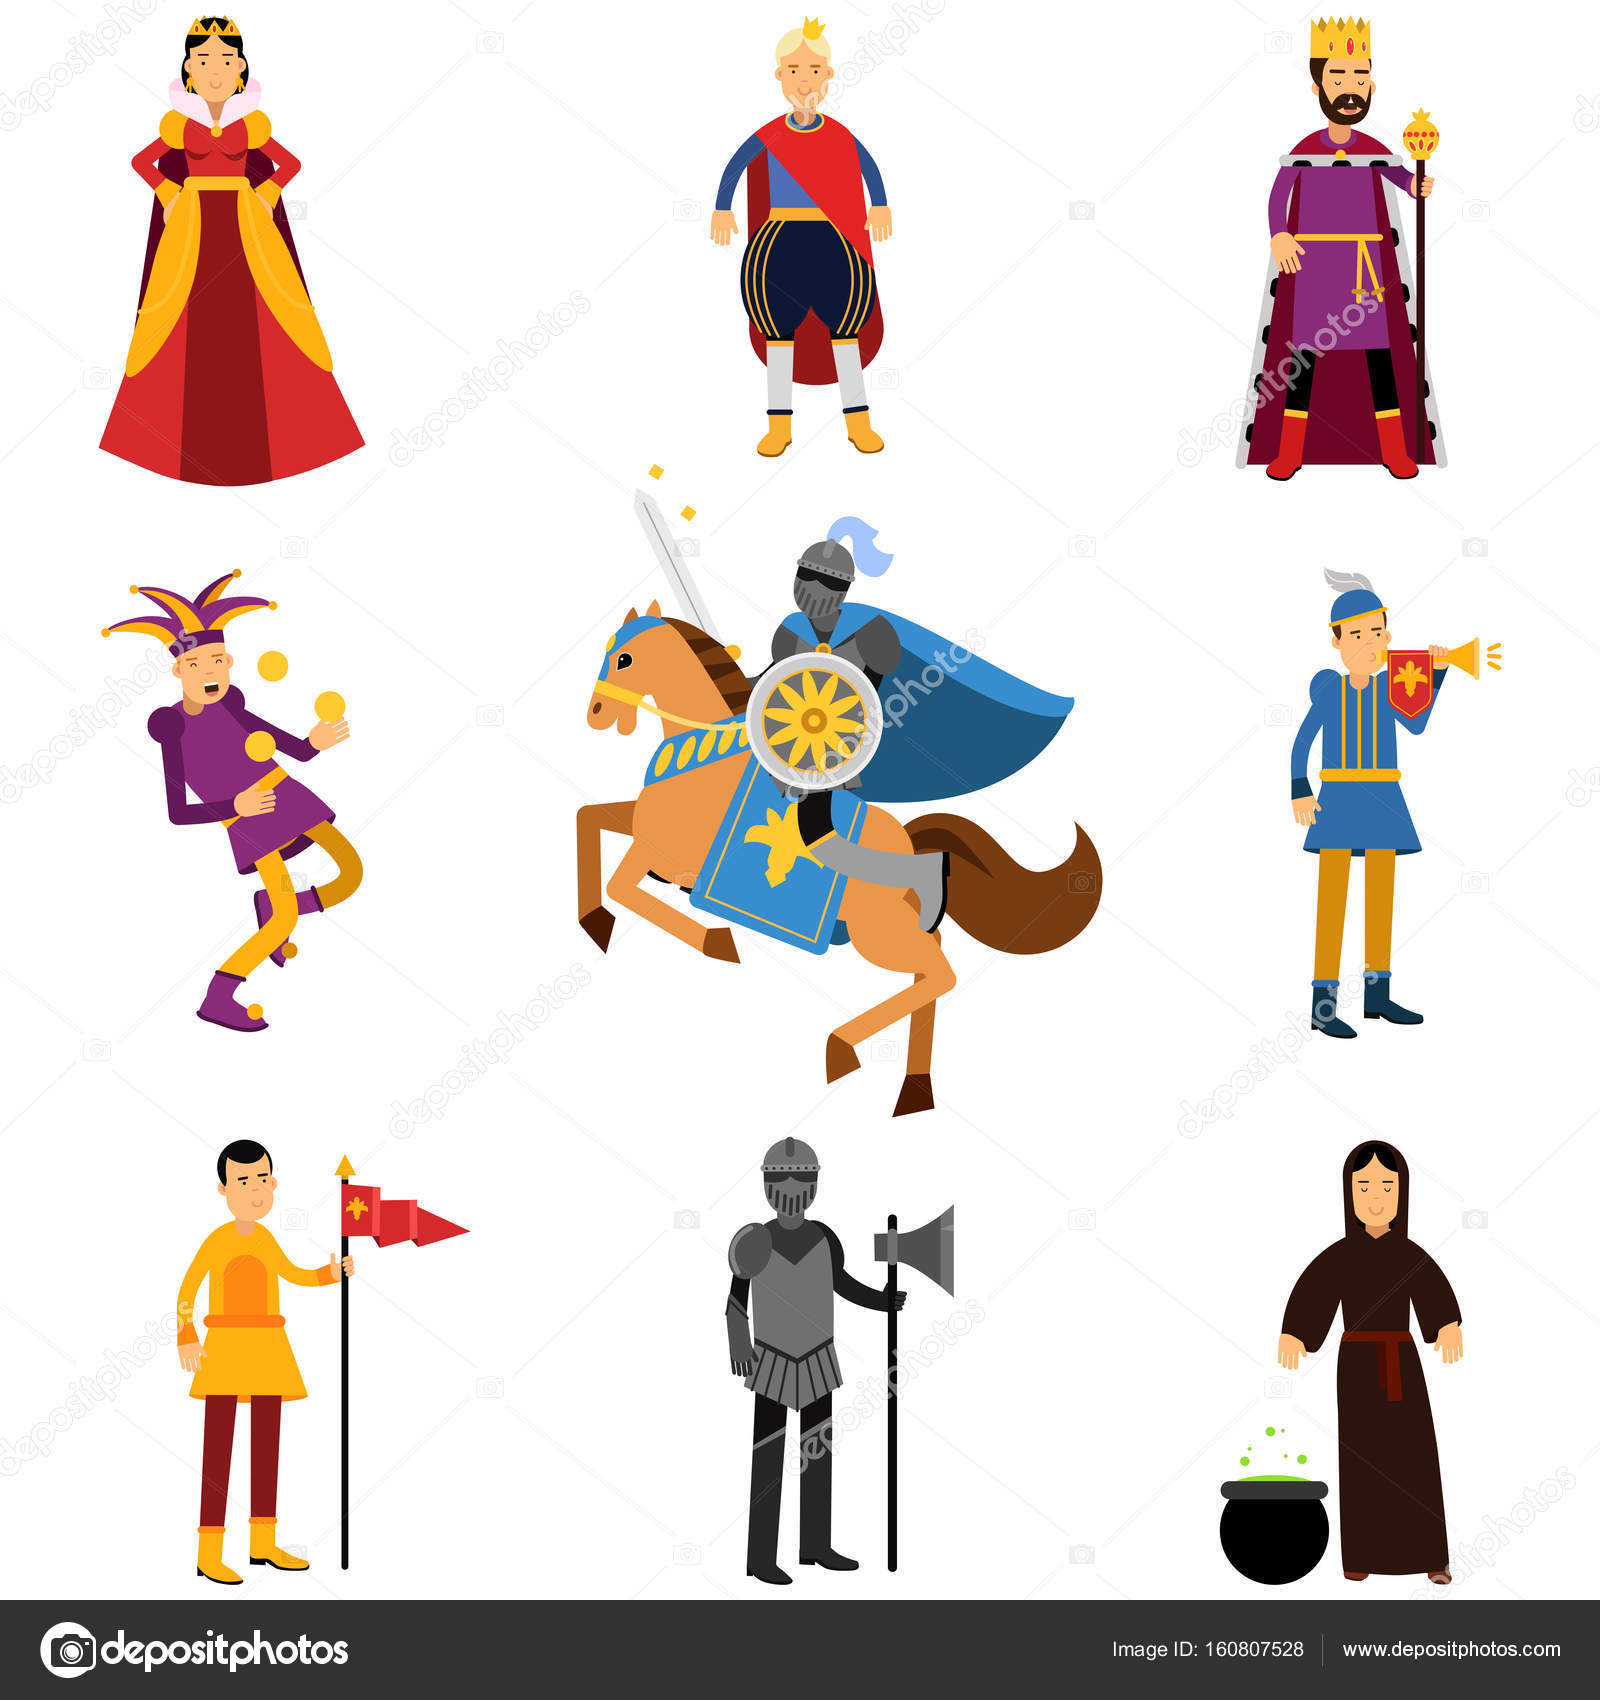 medieval characters in the historical costumes of medieval europe